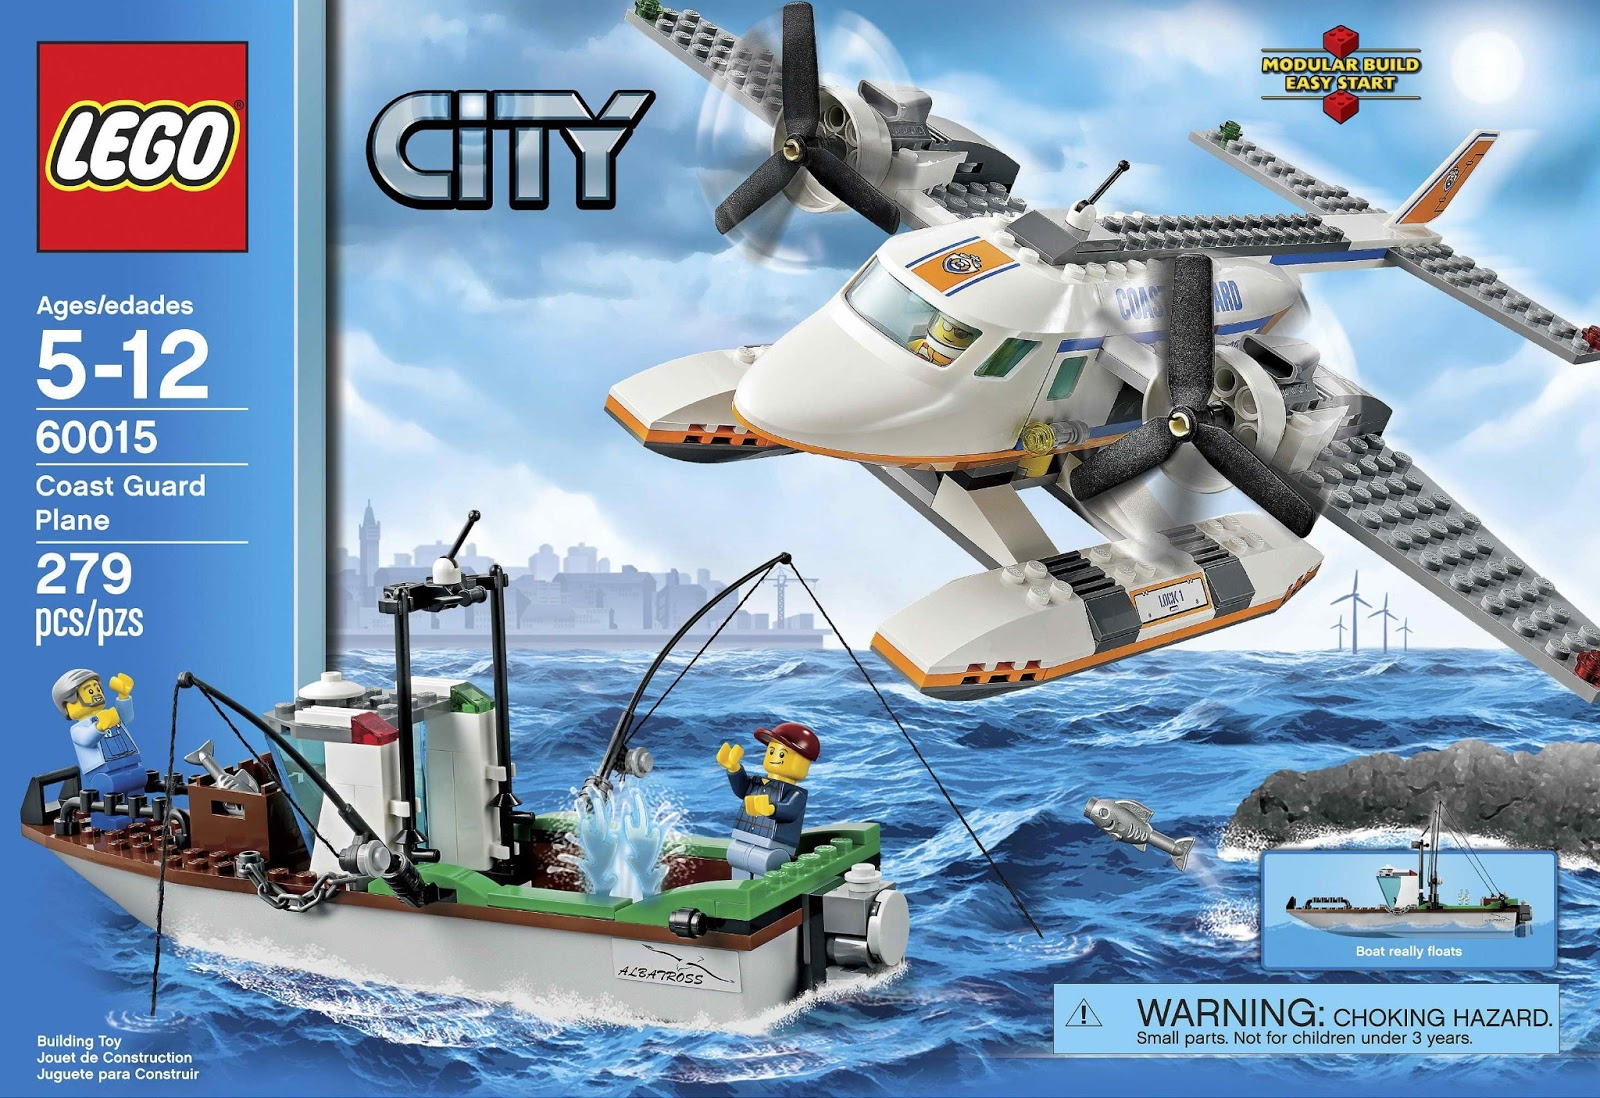 Pin lego 60032 city the lego summer wave in official images on -  Magrudy Com Toys